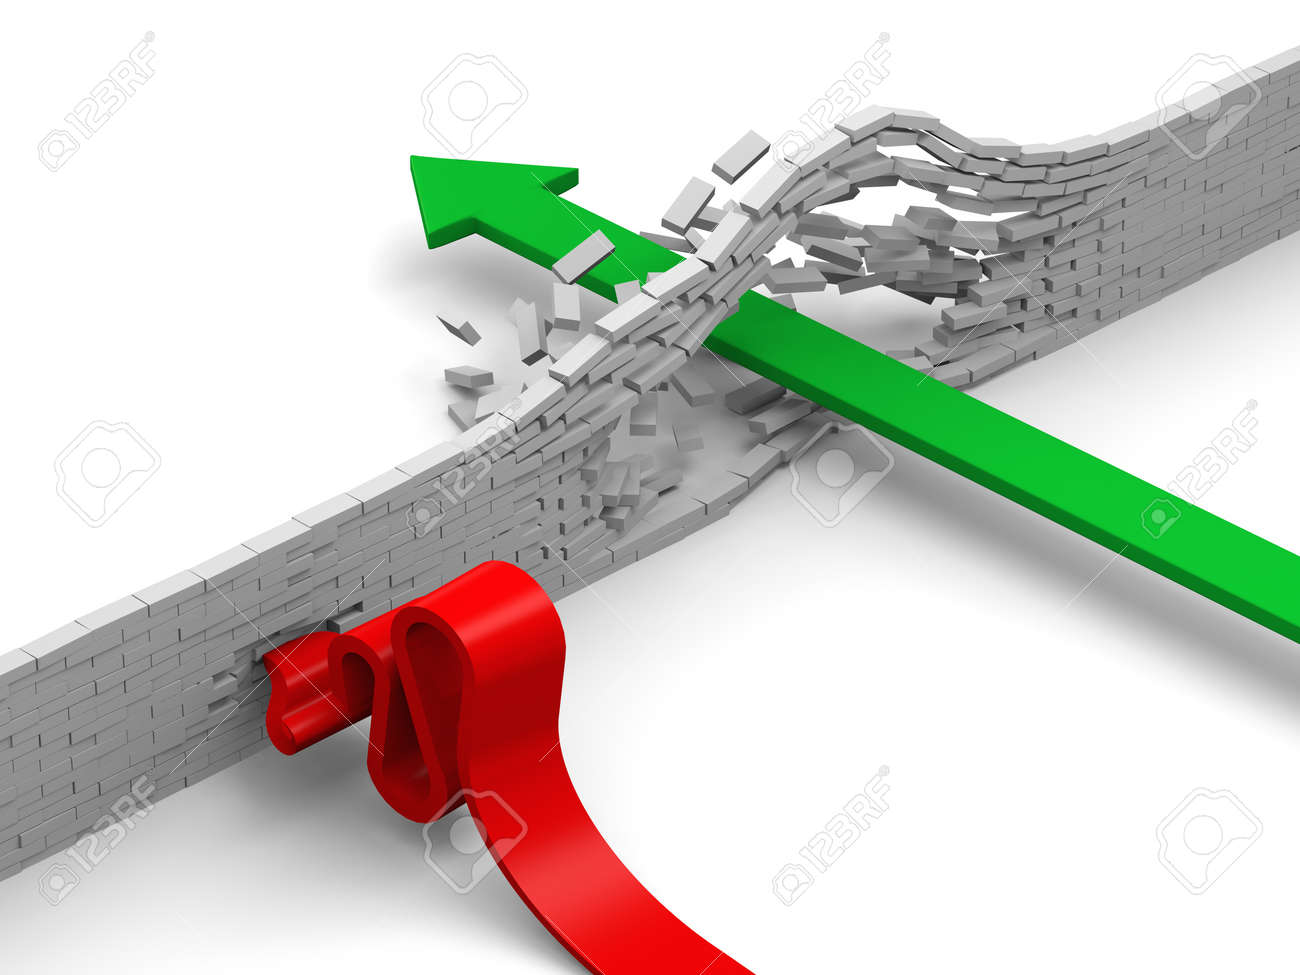 Concept of breaking through obstacles, or failing illustrated by green and red arrows overcoming brick wall Stock Photo - 15129681